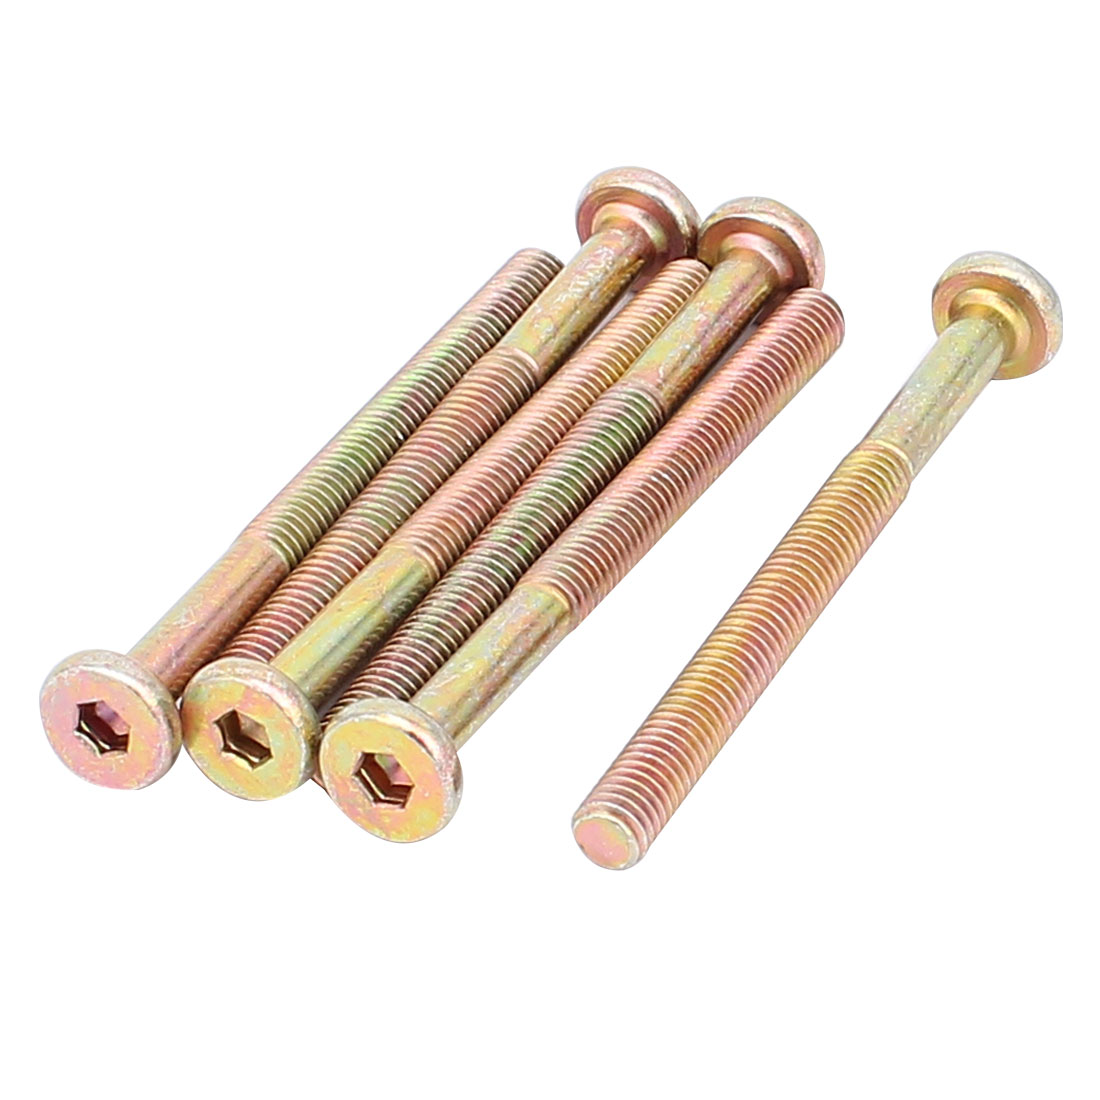 Uxcell M6 x 70mm Male Thread 1mm Pitch Hex Socket Head Cap Screw Bolt Bronze Tone (6-pack)